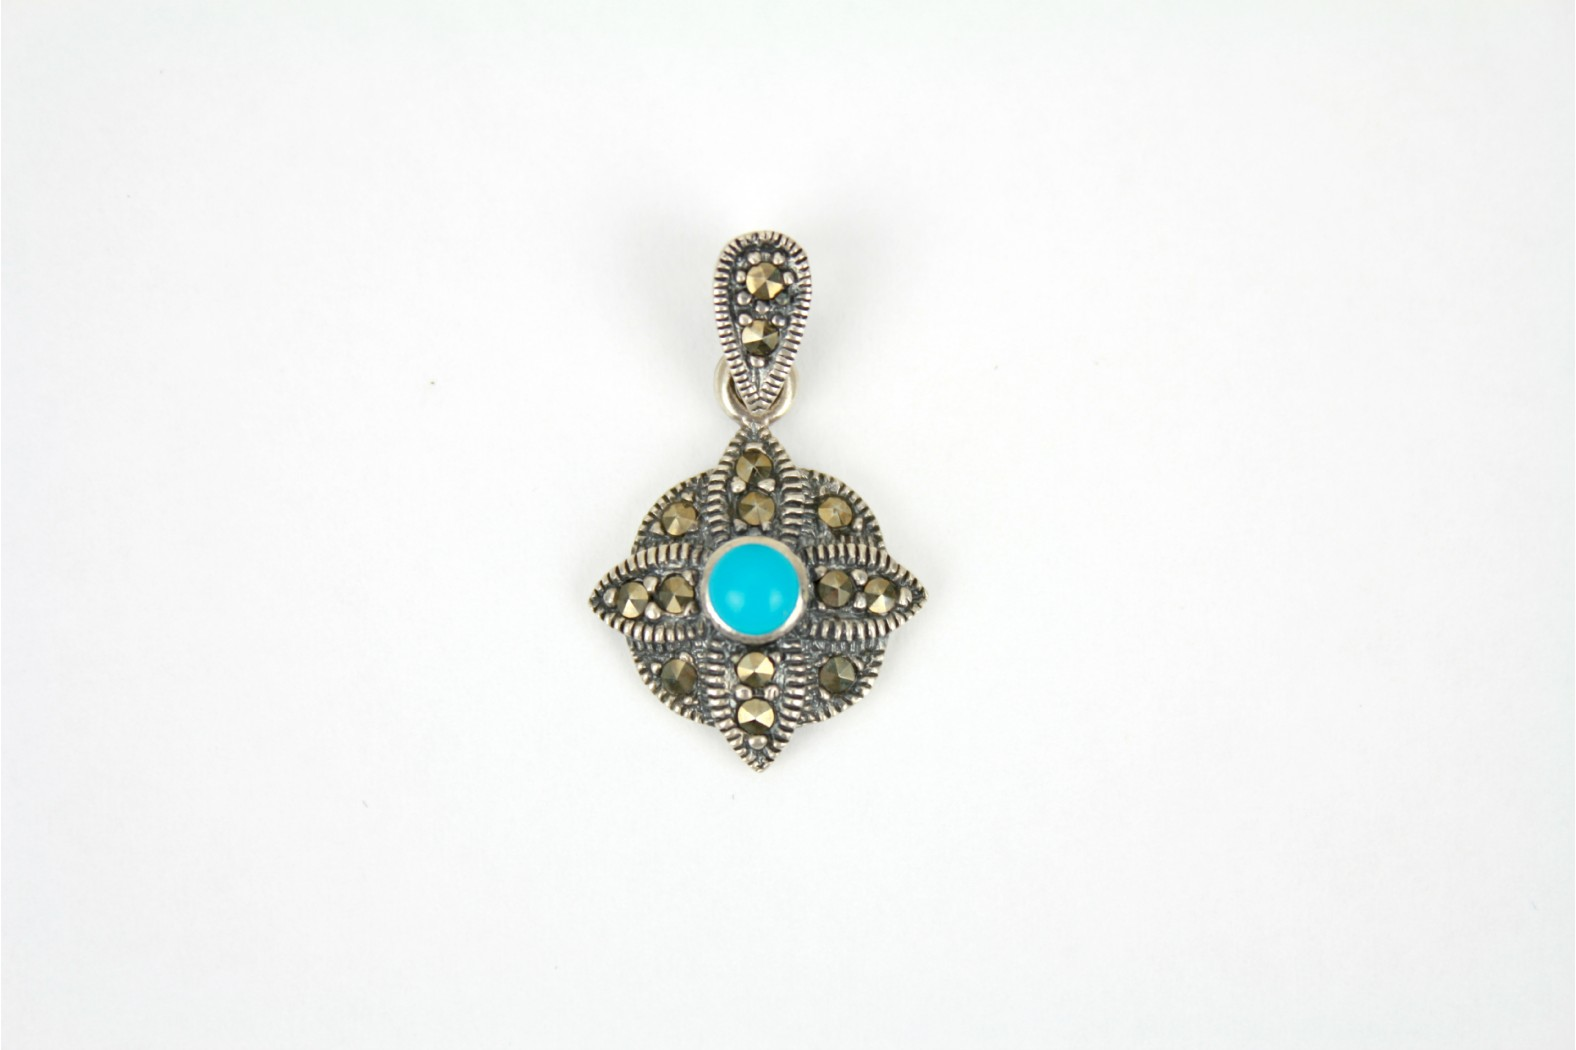 Petite Flower shaped with centrepiece Turquoise stone embellished with Marcasite stones